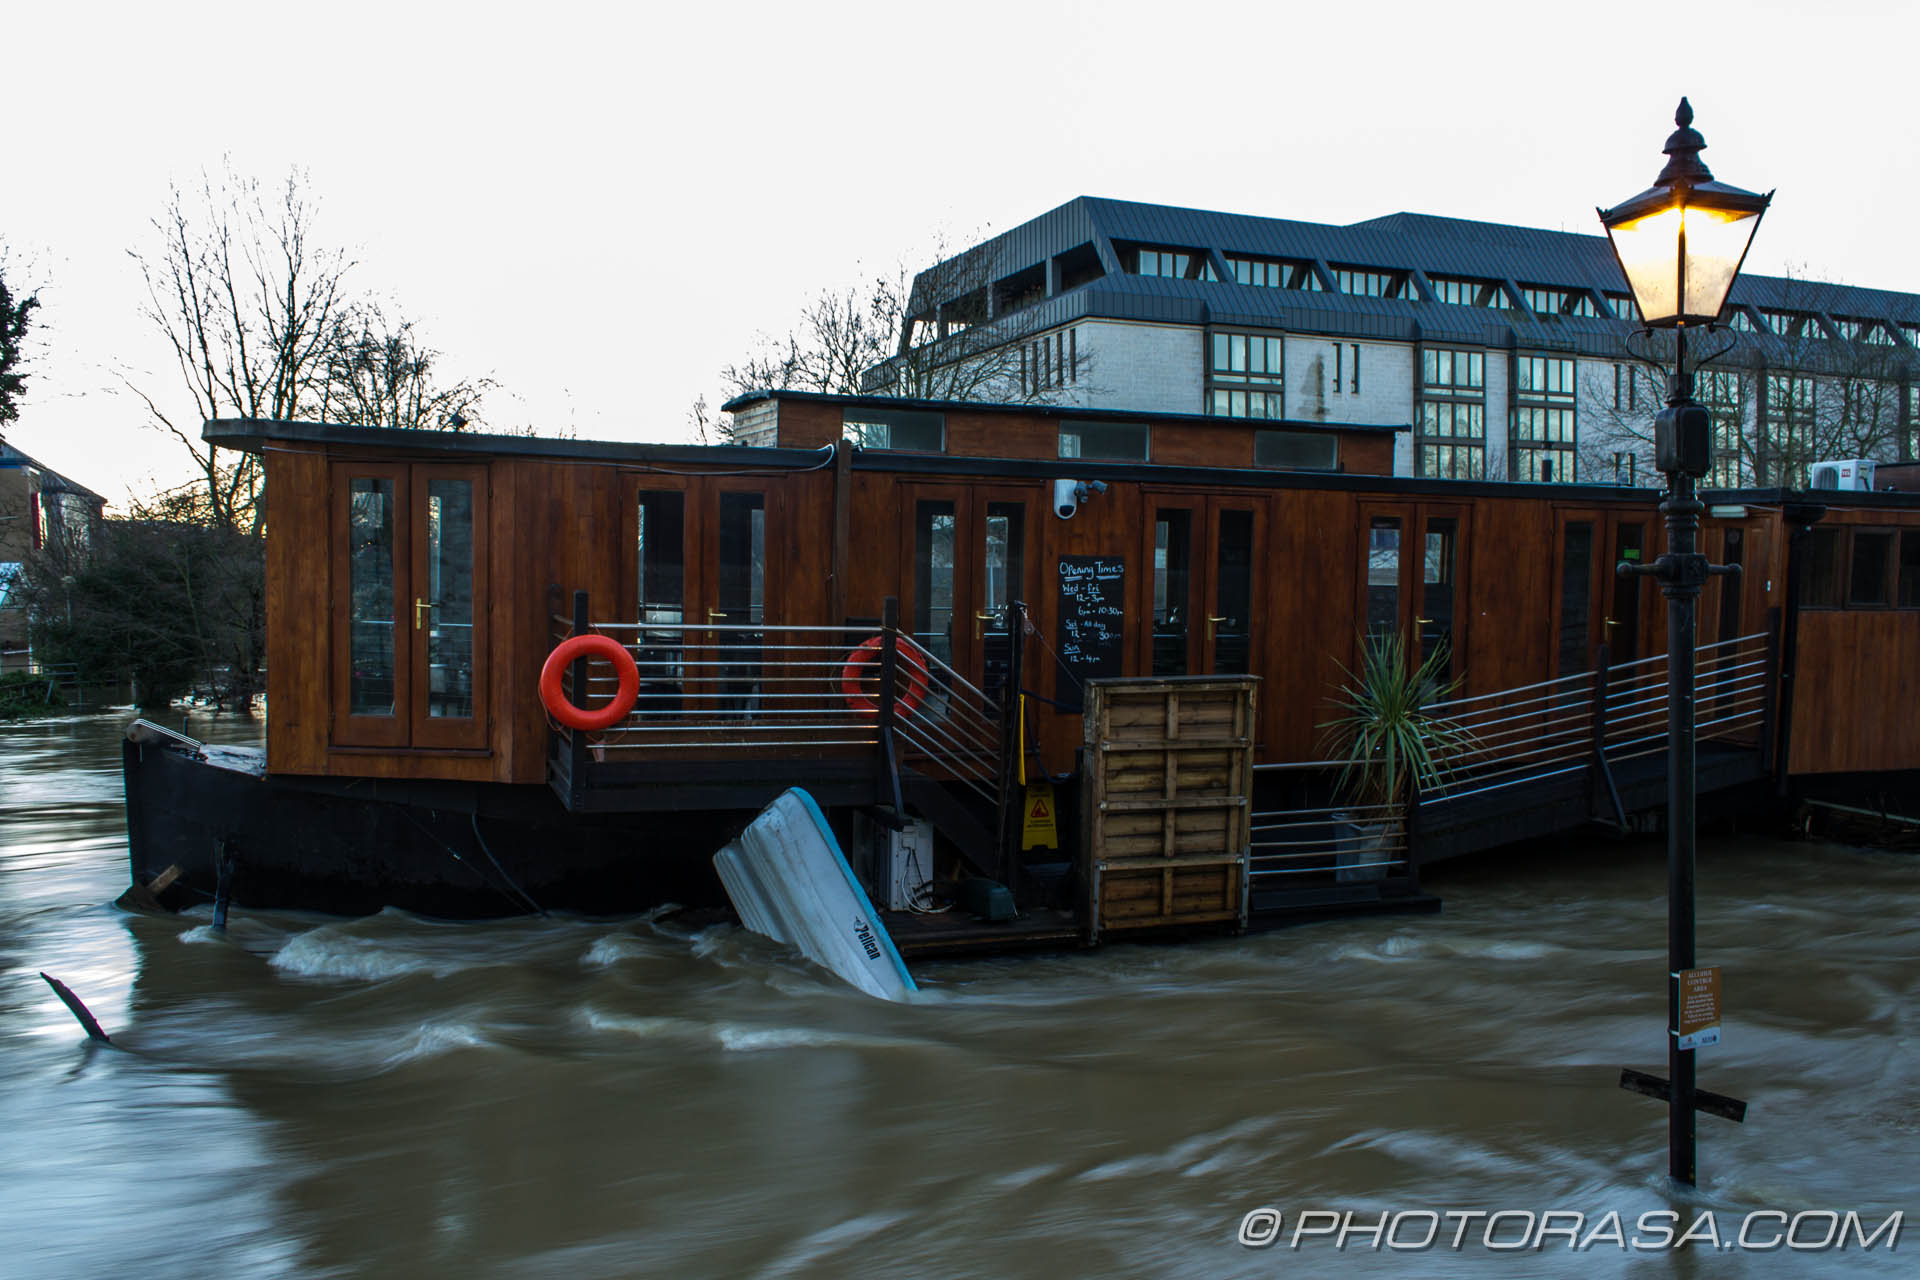 http://photorasa.com/wet-xmas-maidstone-river-medway-floods-town-centre/the-barge-is-still-there/